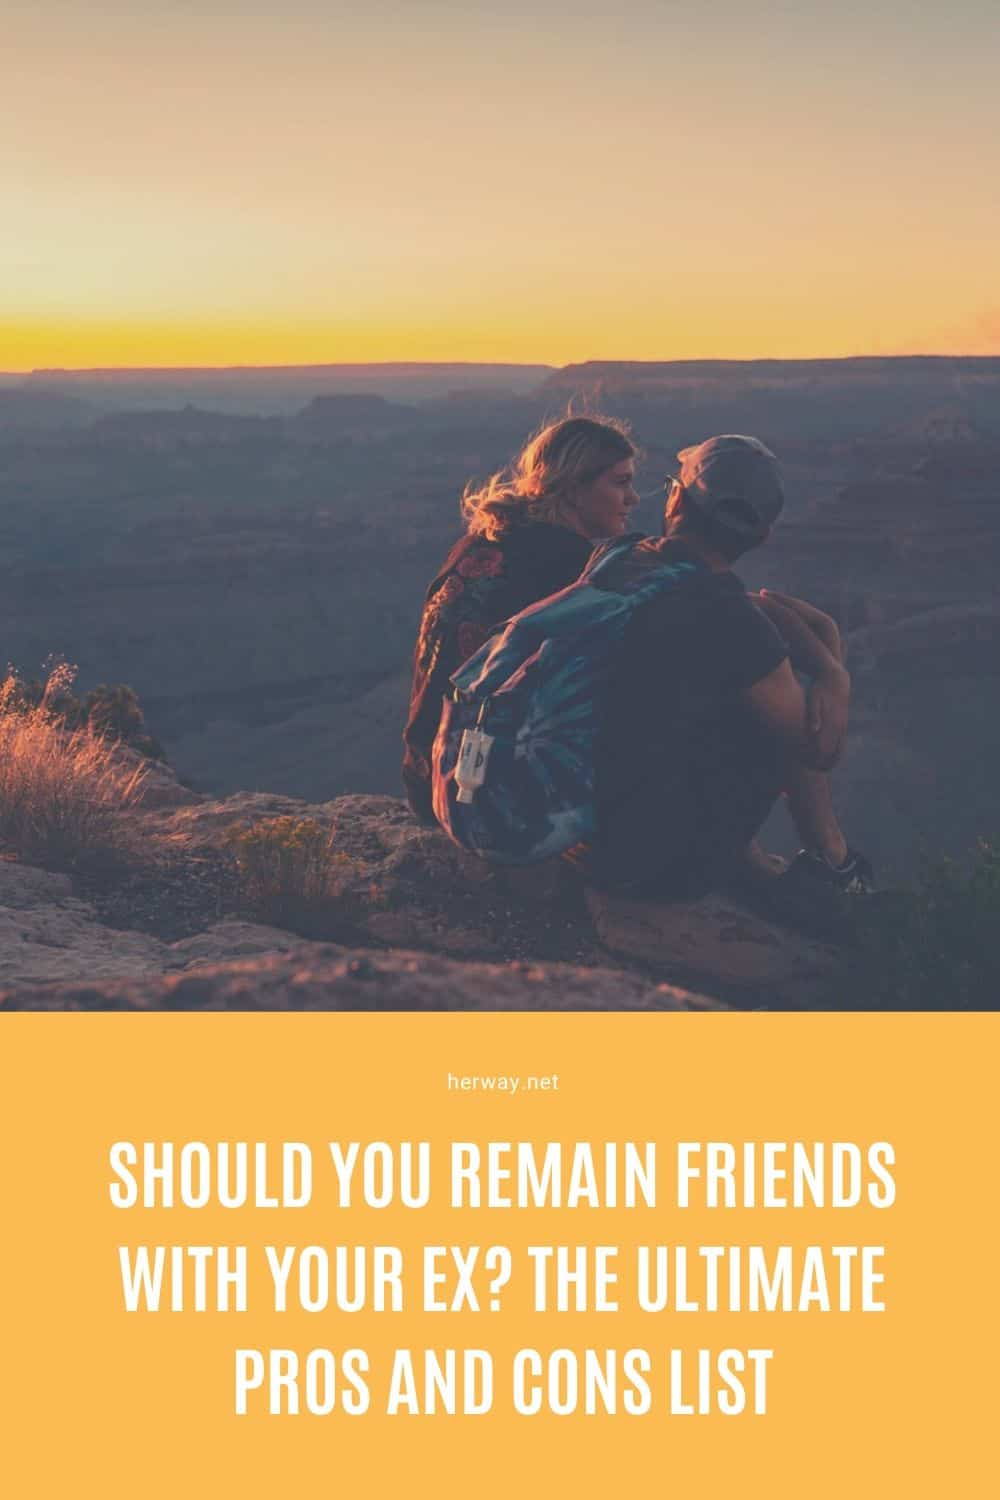 Should You Remain Friends With Your Ex? The Ultimate Pros And Cons List